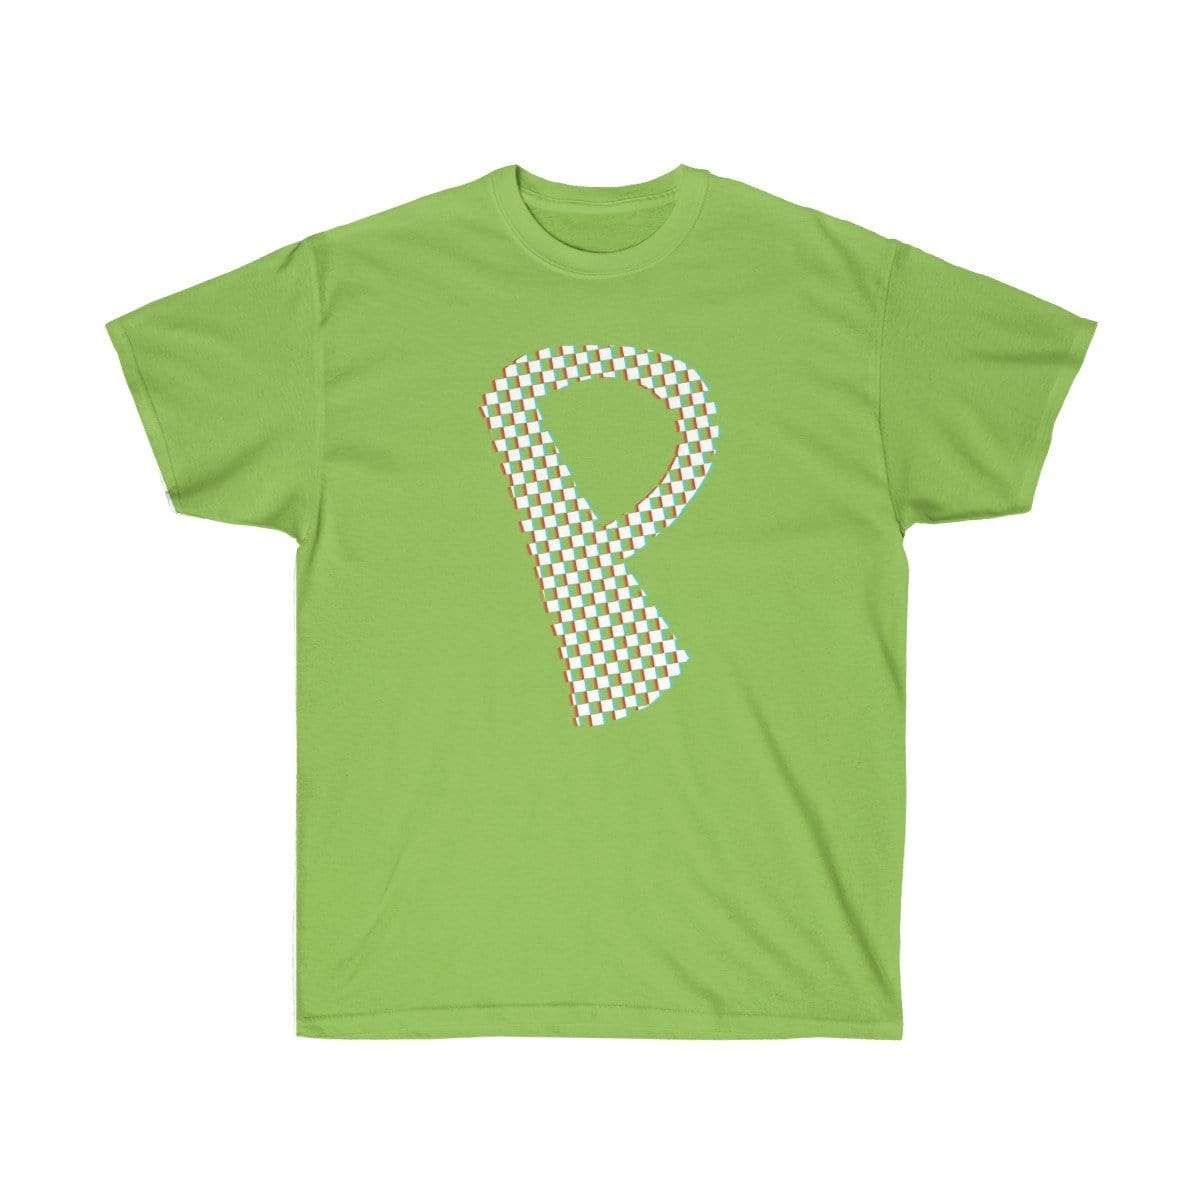 Plumskum T-Shirt Lime / S Checkered, Glitchy, Capital P T-Shirt